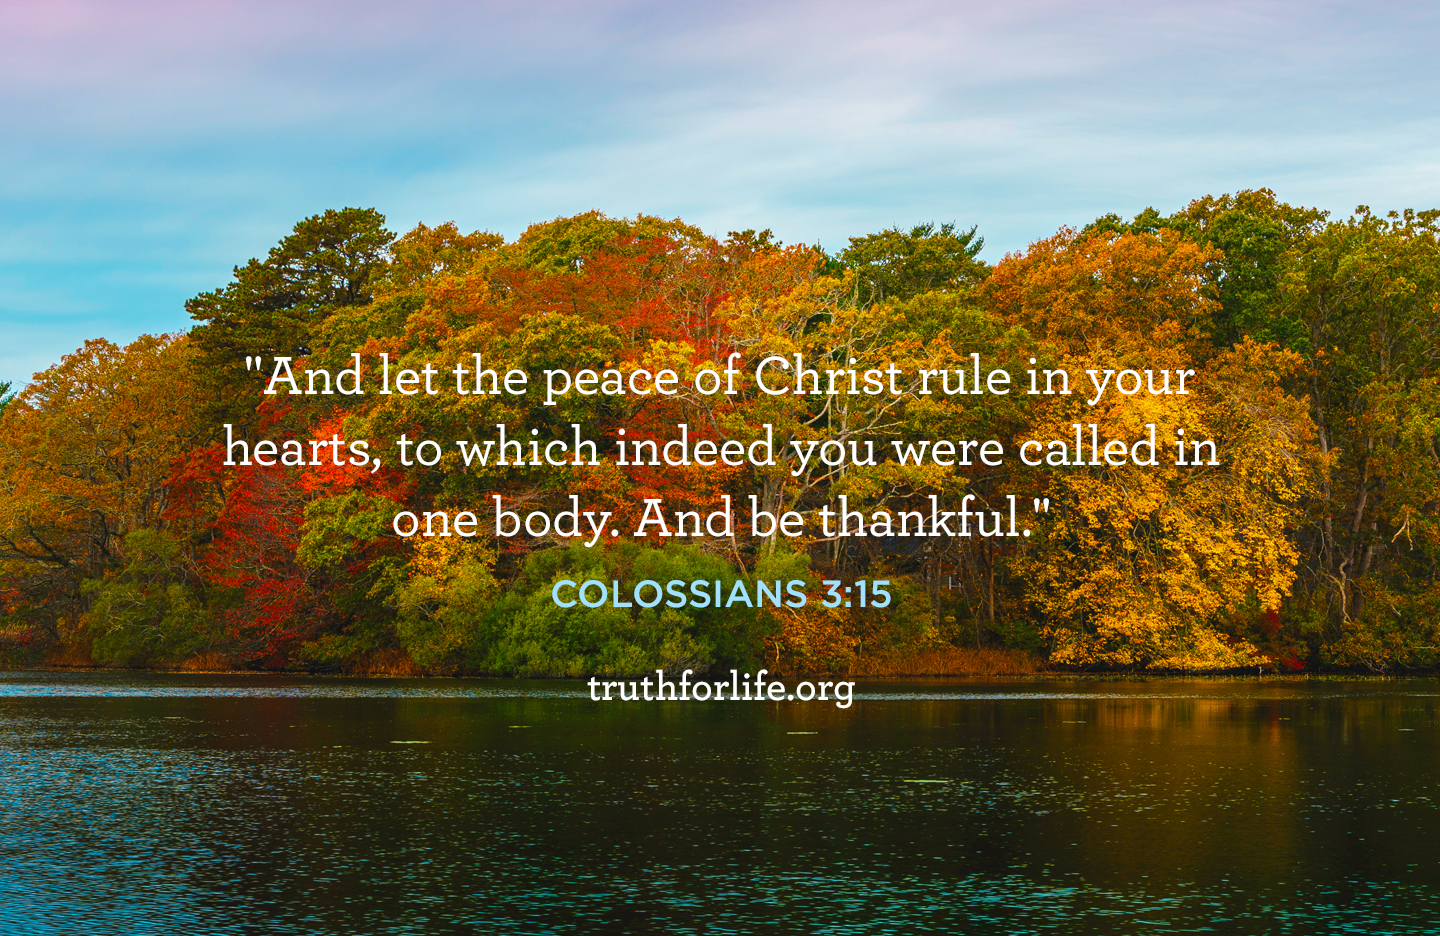 And let the peace of Christ rule in your hearts, to which indeed you were called in one body. And be thankful. - Colossians 3:15